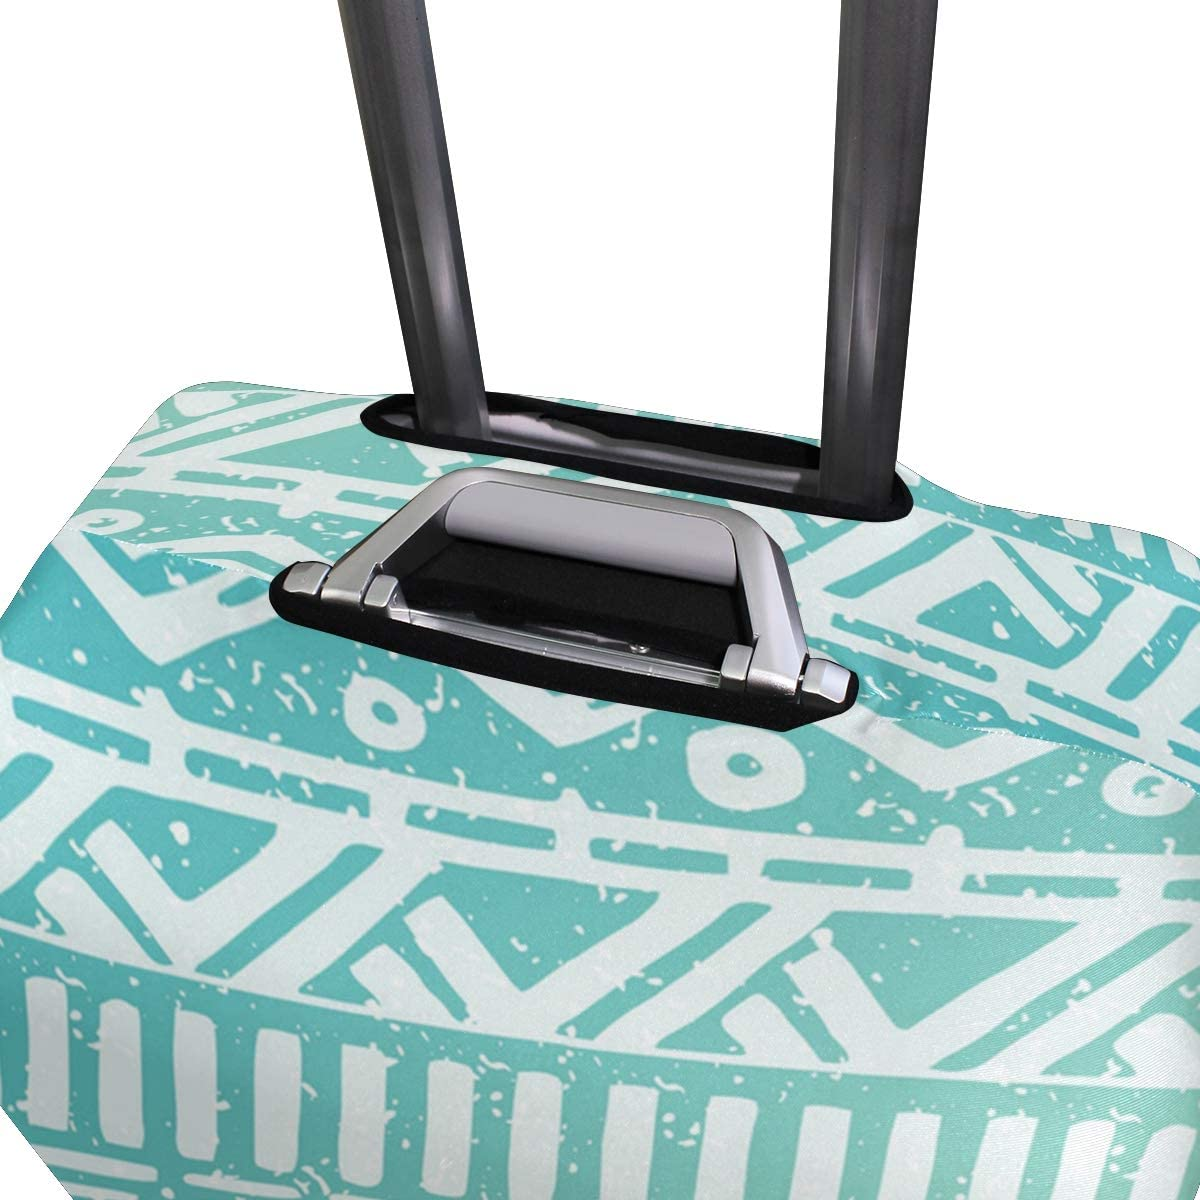 Gradient Blue Geometry Decor Traveler Lightweight Rotating Luggage Protector Case Can Carry With You Can Expand Travel Bag Trolley Rolling Luggage Protector Case